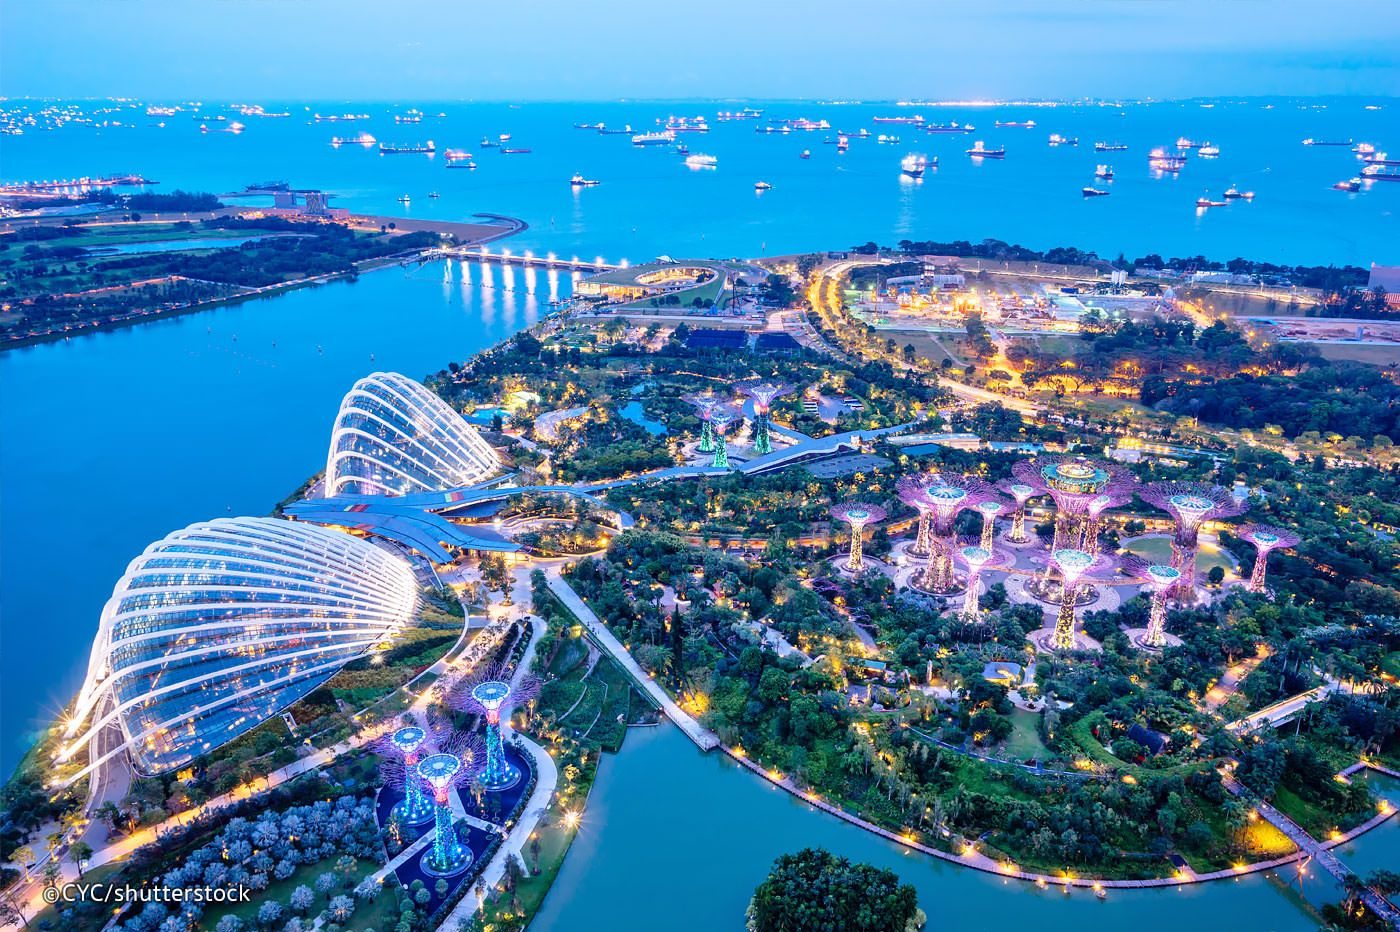 Gardens By The Bay Is A Huge Colourful Futuristic Park In The Bay Area Of Singapore The Famous Sup Singapore Attractions Gardens By The Bay Singapore Garden